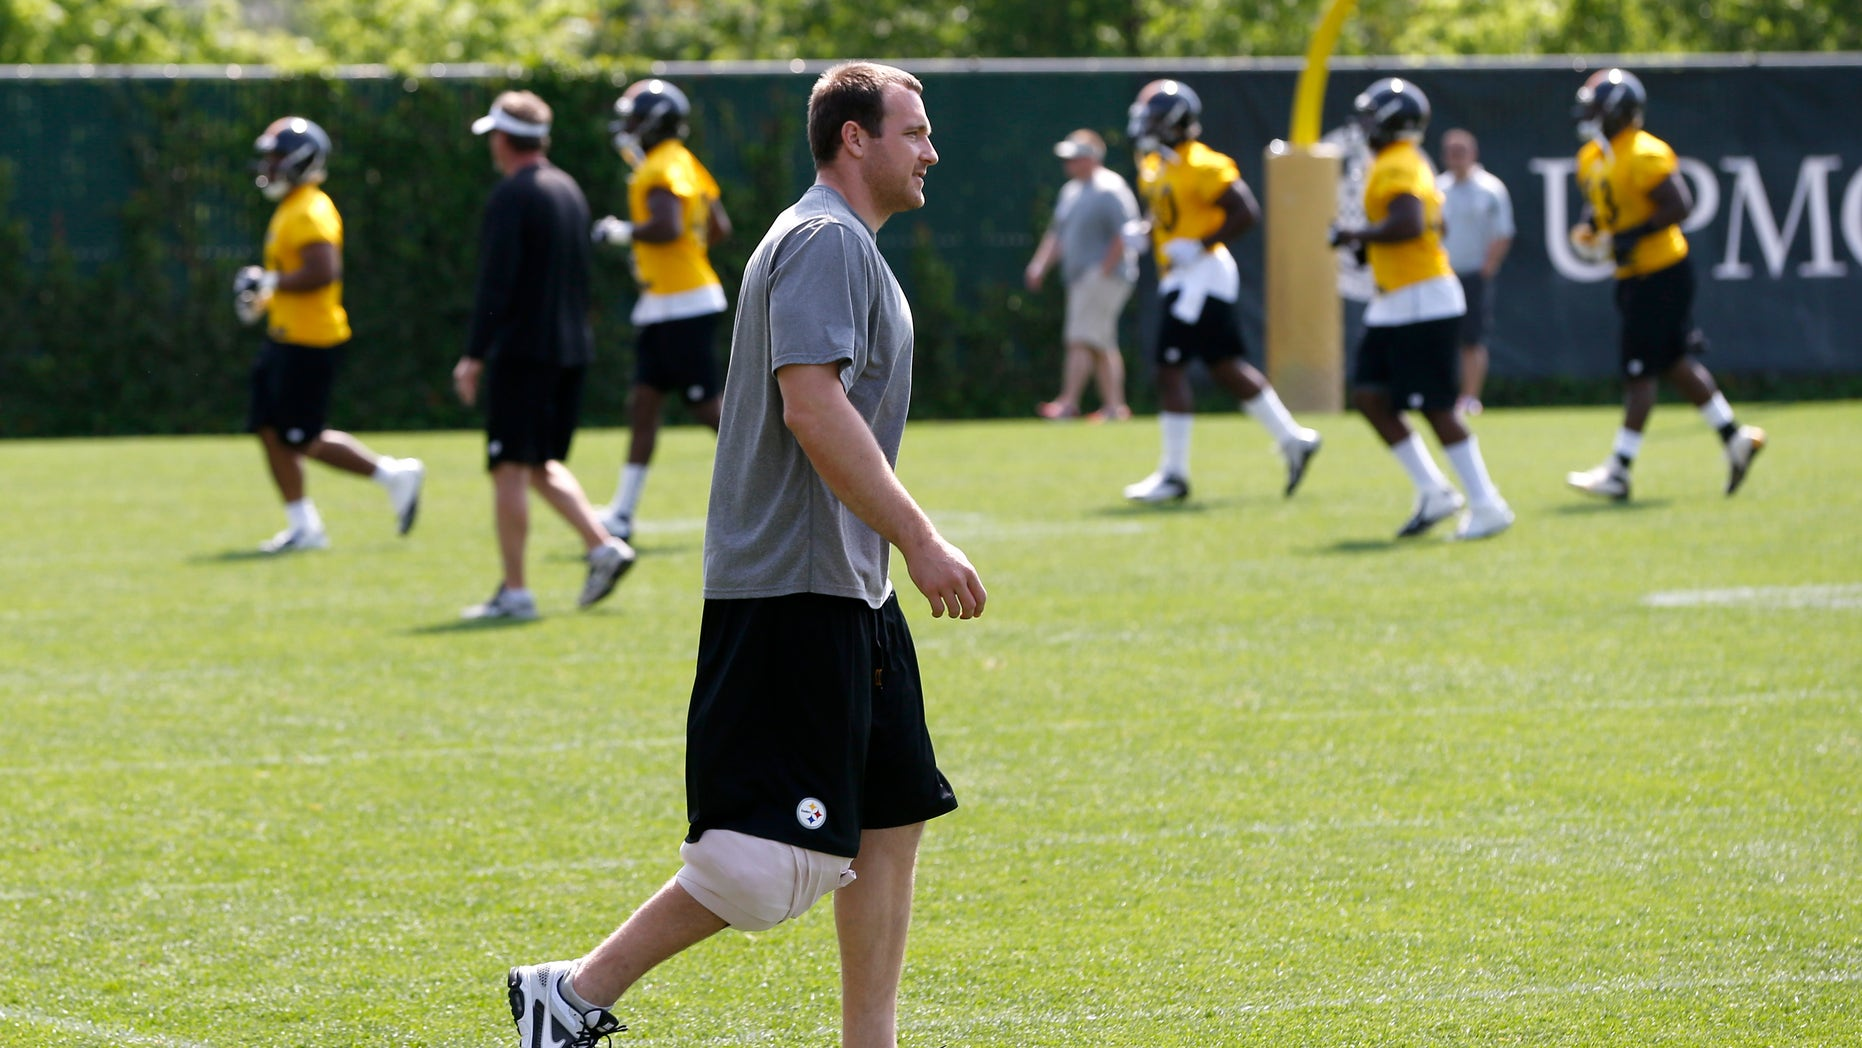 Pittsburgh Steelers tight end Heath Miller walks across the practice field with his right knee wrapped during the NFL football OTA session on  Wednesday, May 22, 2013  at the team headquarters in Pittsburgh. Miller is recovering from an injury from last season. (AP Photo/Keith Srakocic)